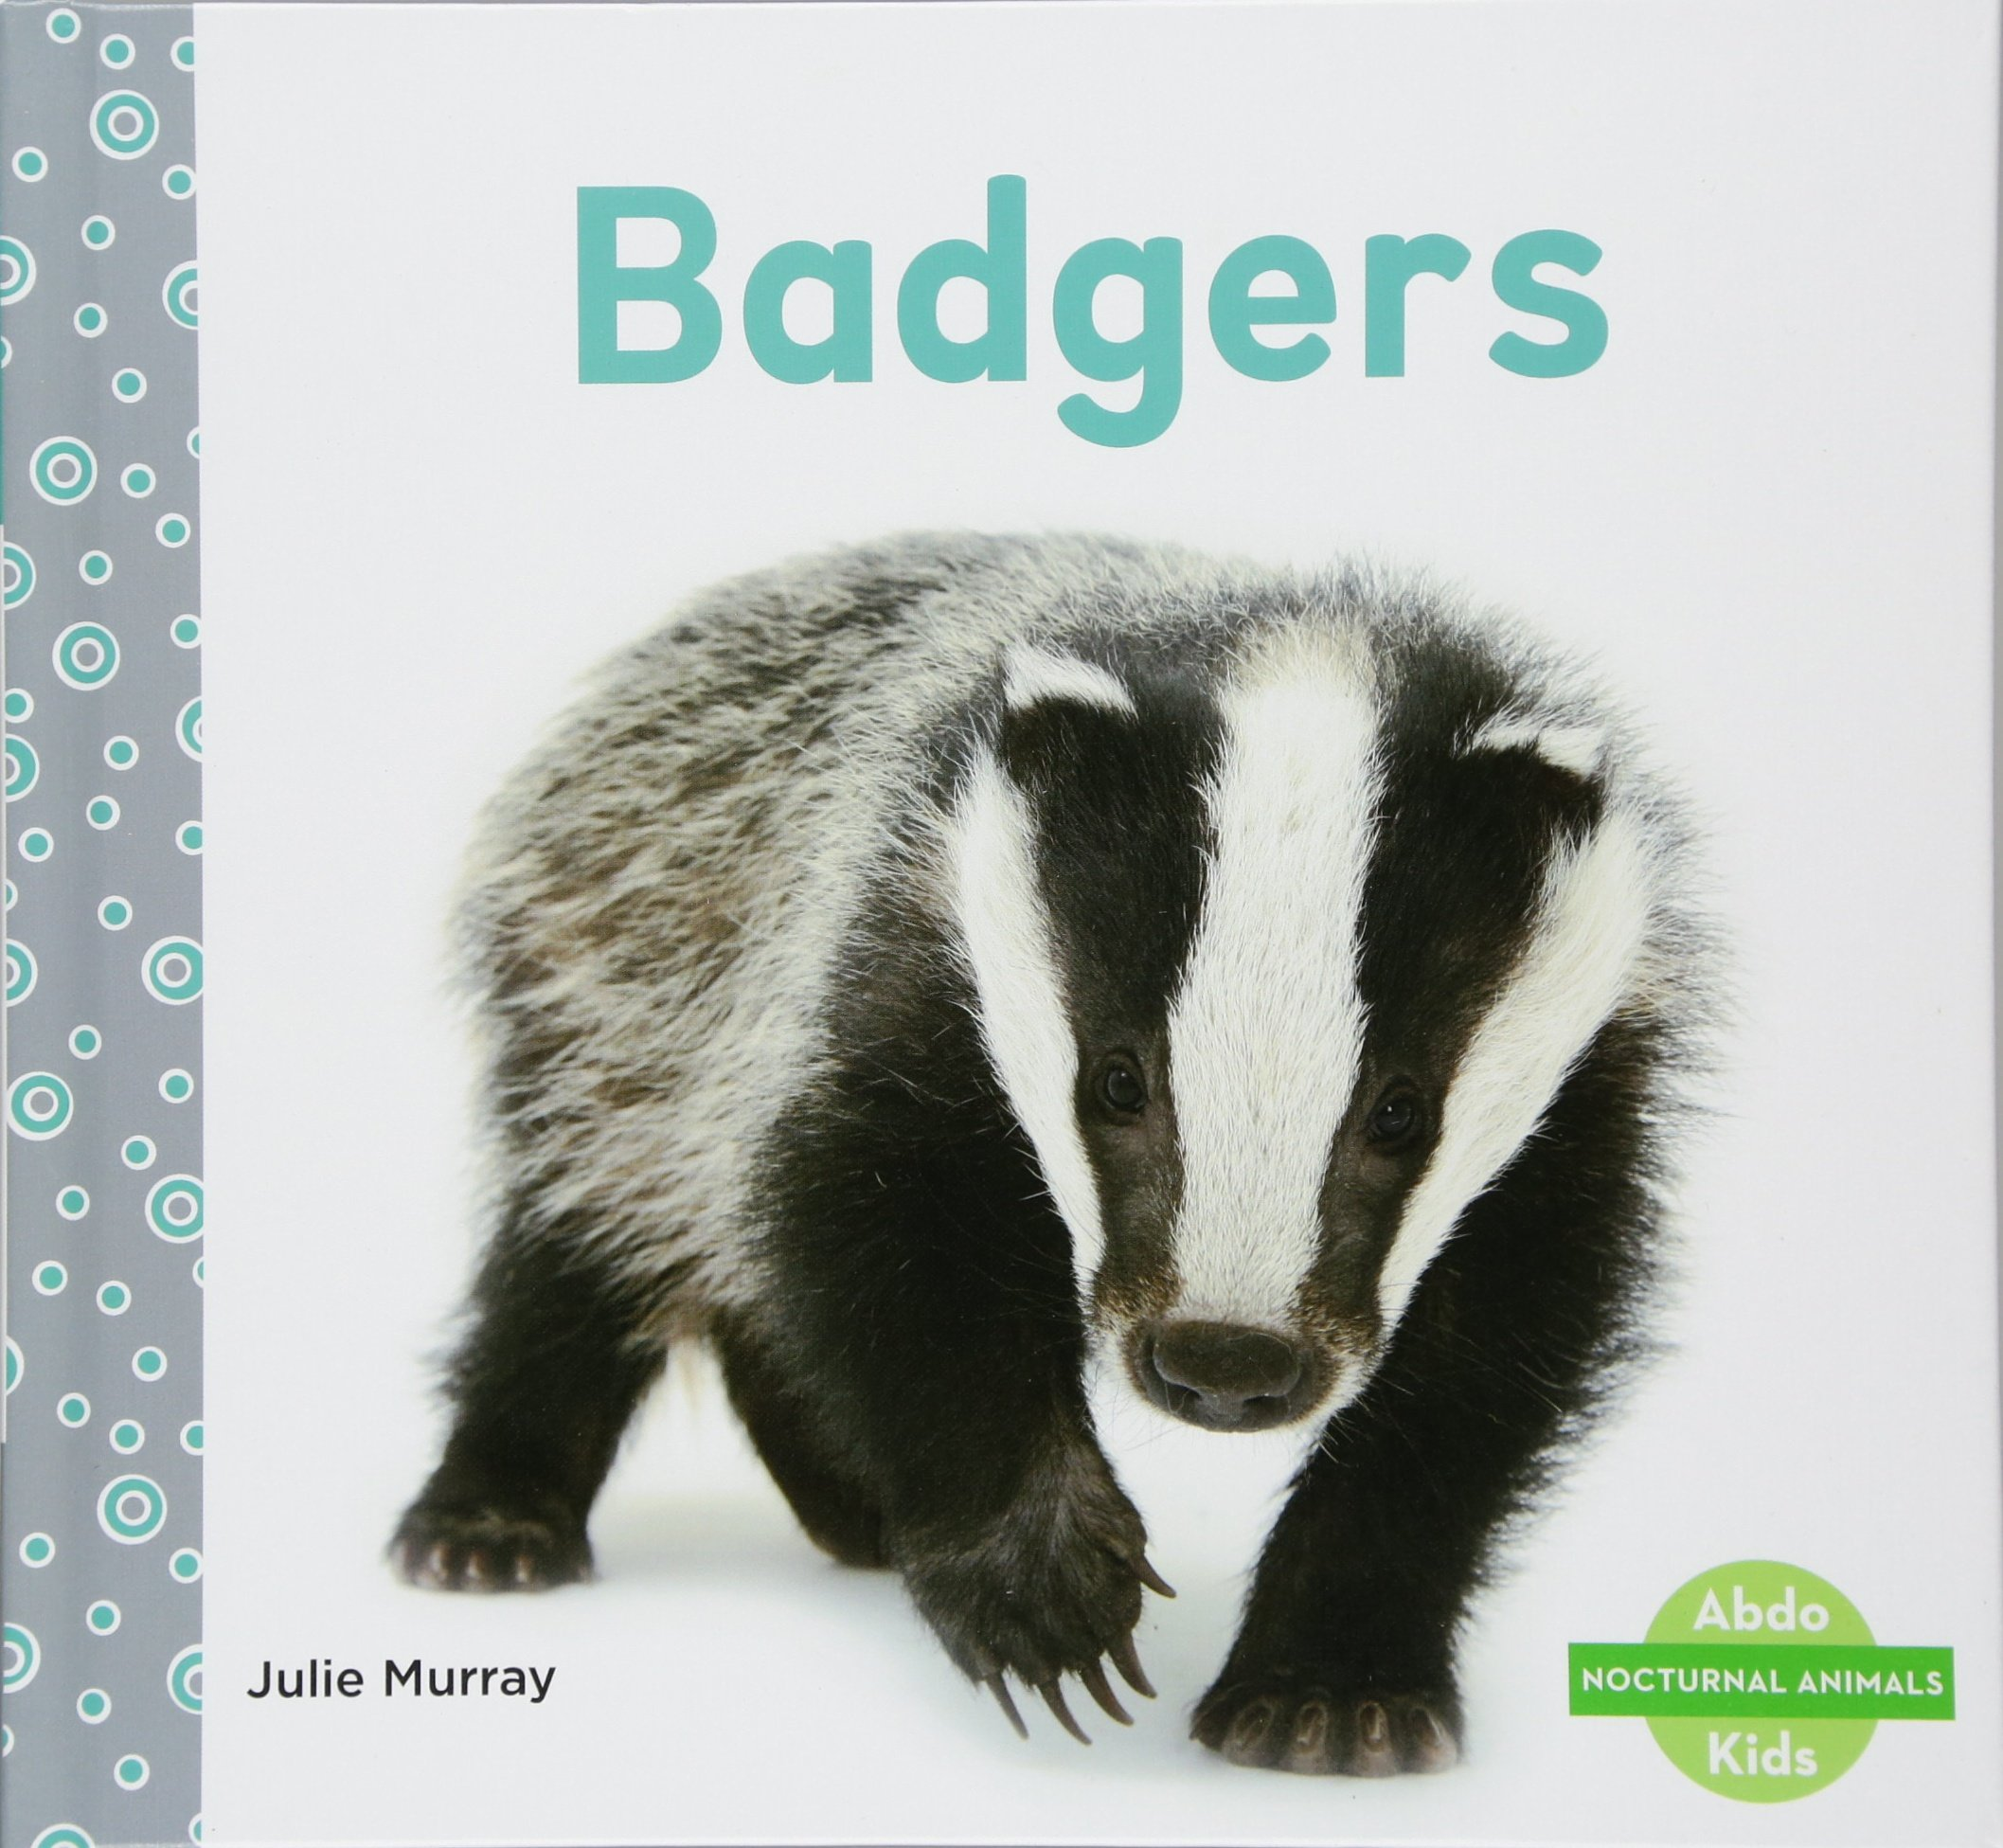 Image of: Dangerous Nocturnal Badgers nocturnal Animals Library Binding January 26 2018 World Wildlife Fund Badgers nocturnal Animals Julie Murray 9781532104053 Amazoncom